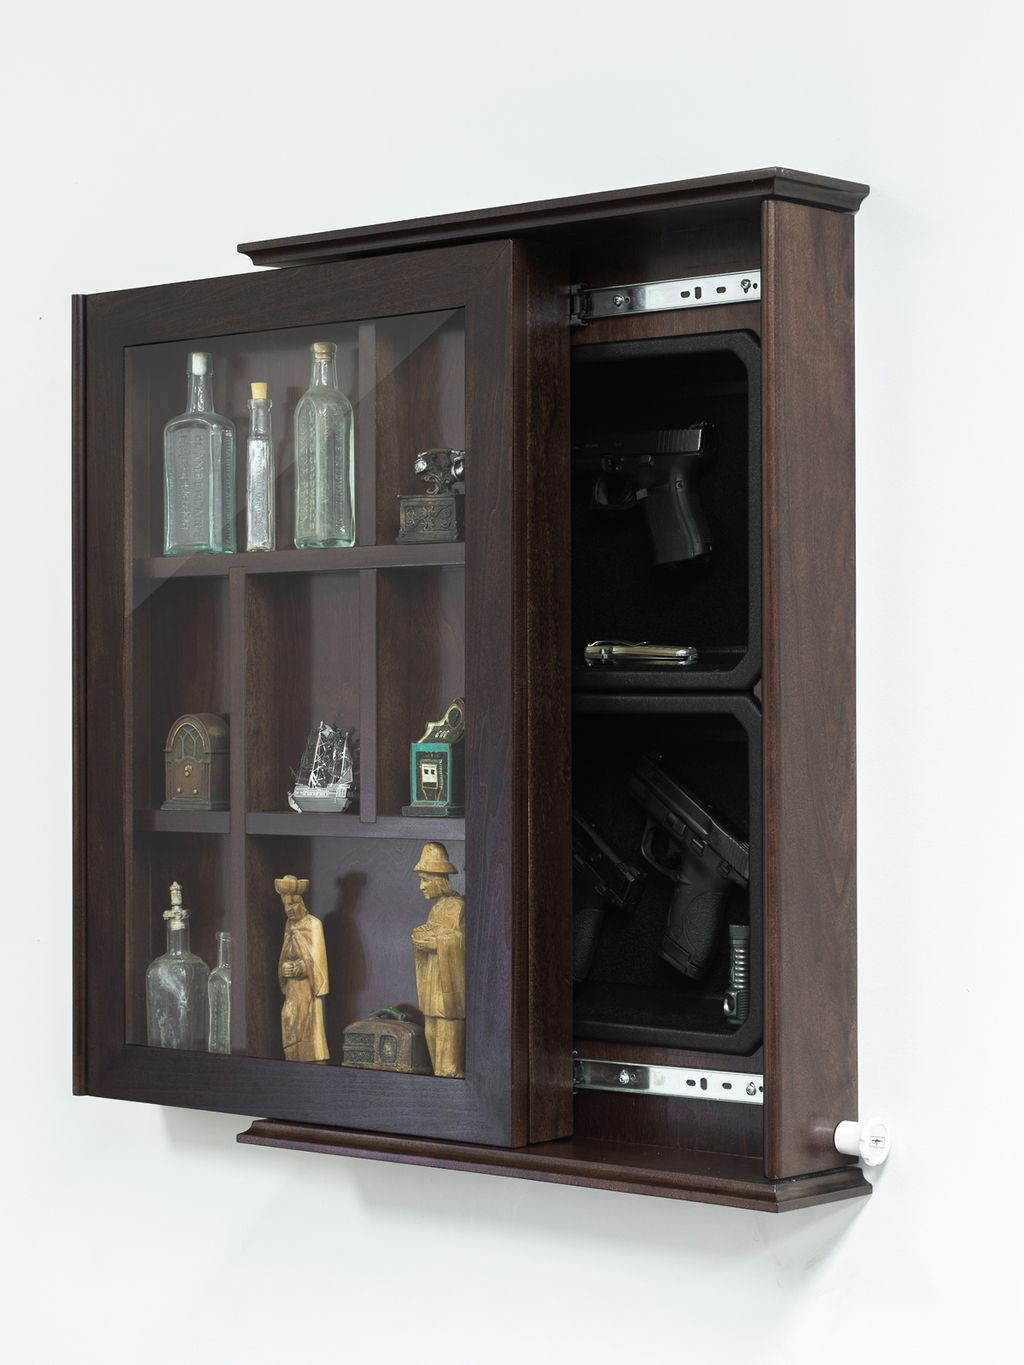 cabinets made with home hidden gun ideas design furniture american storage cabinet bookcase